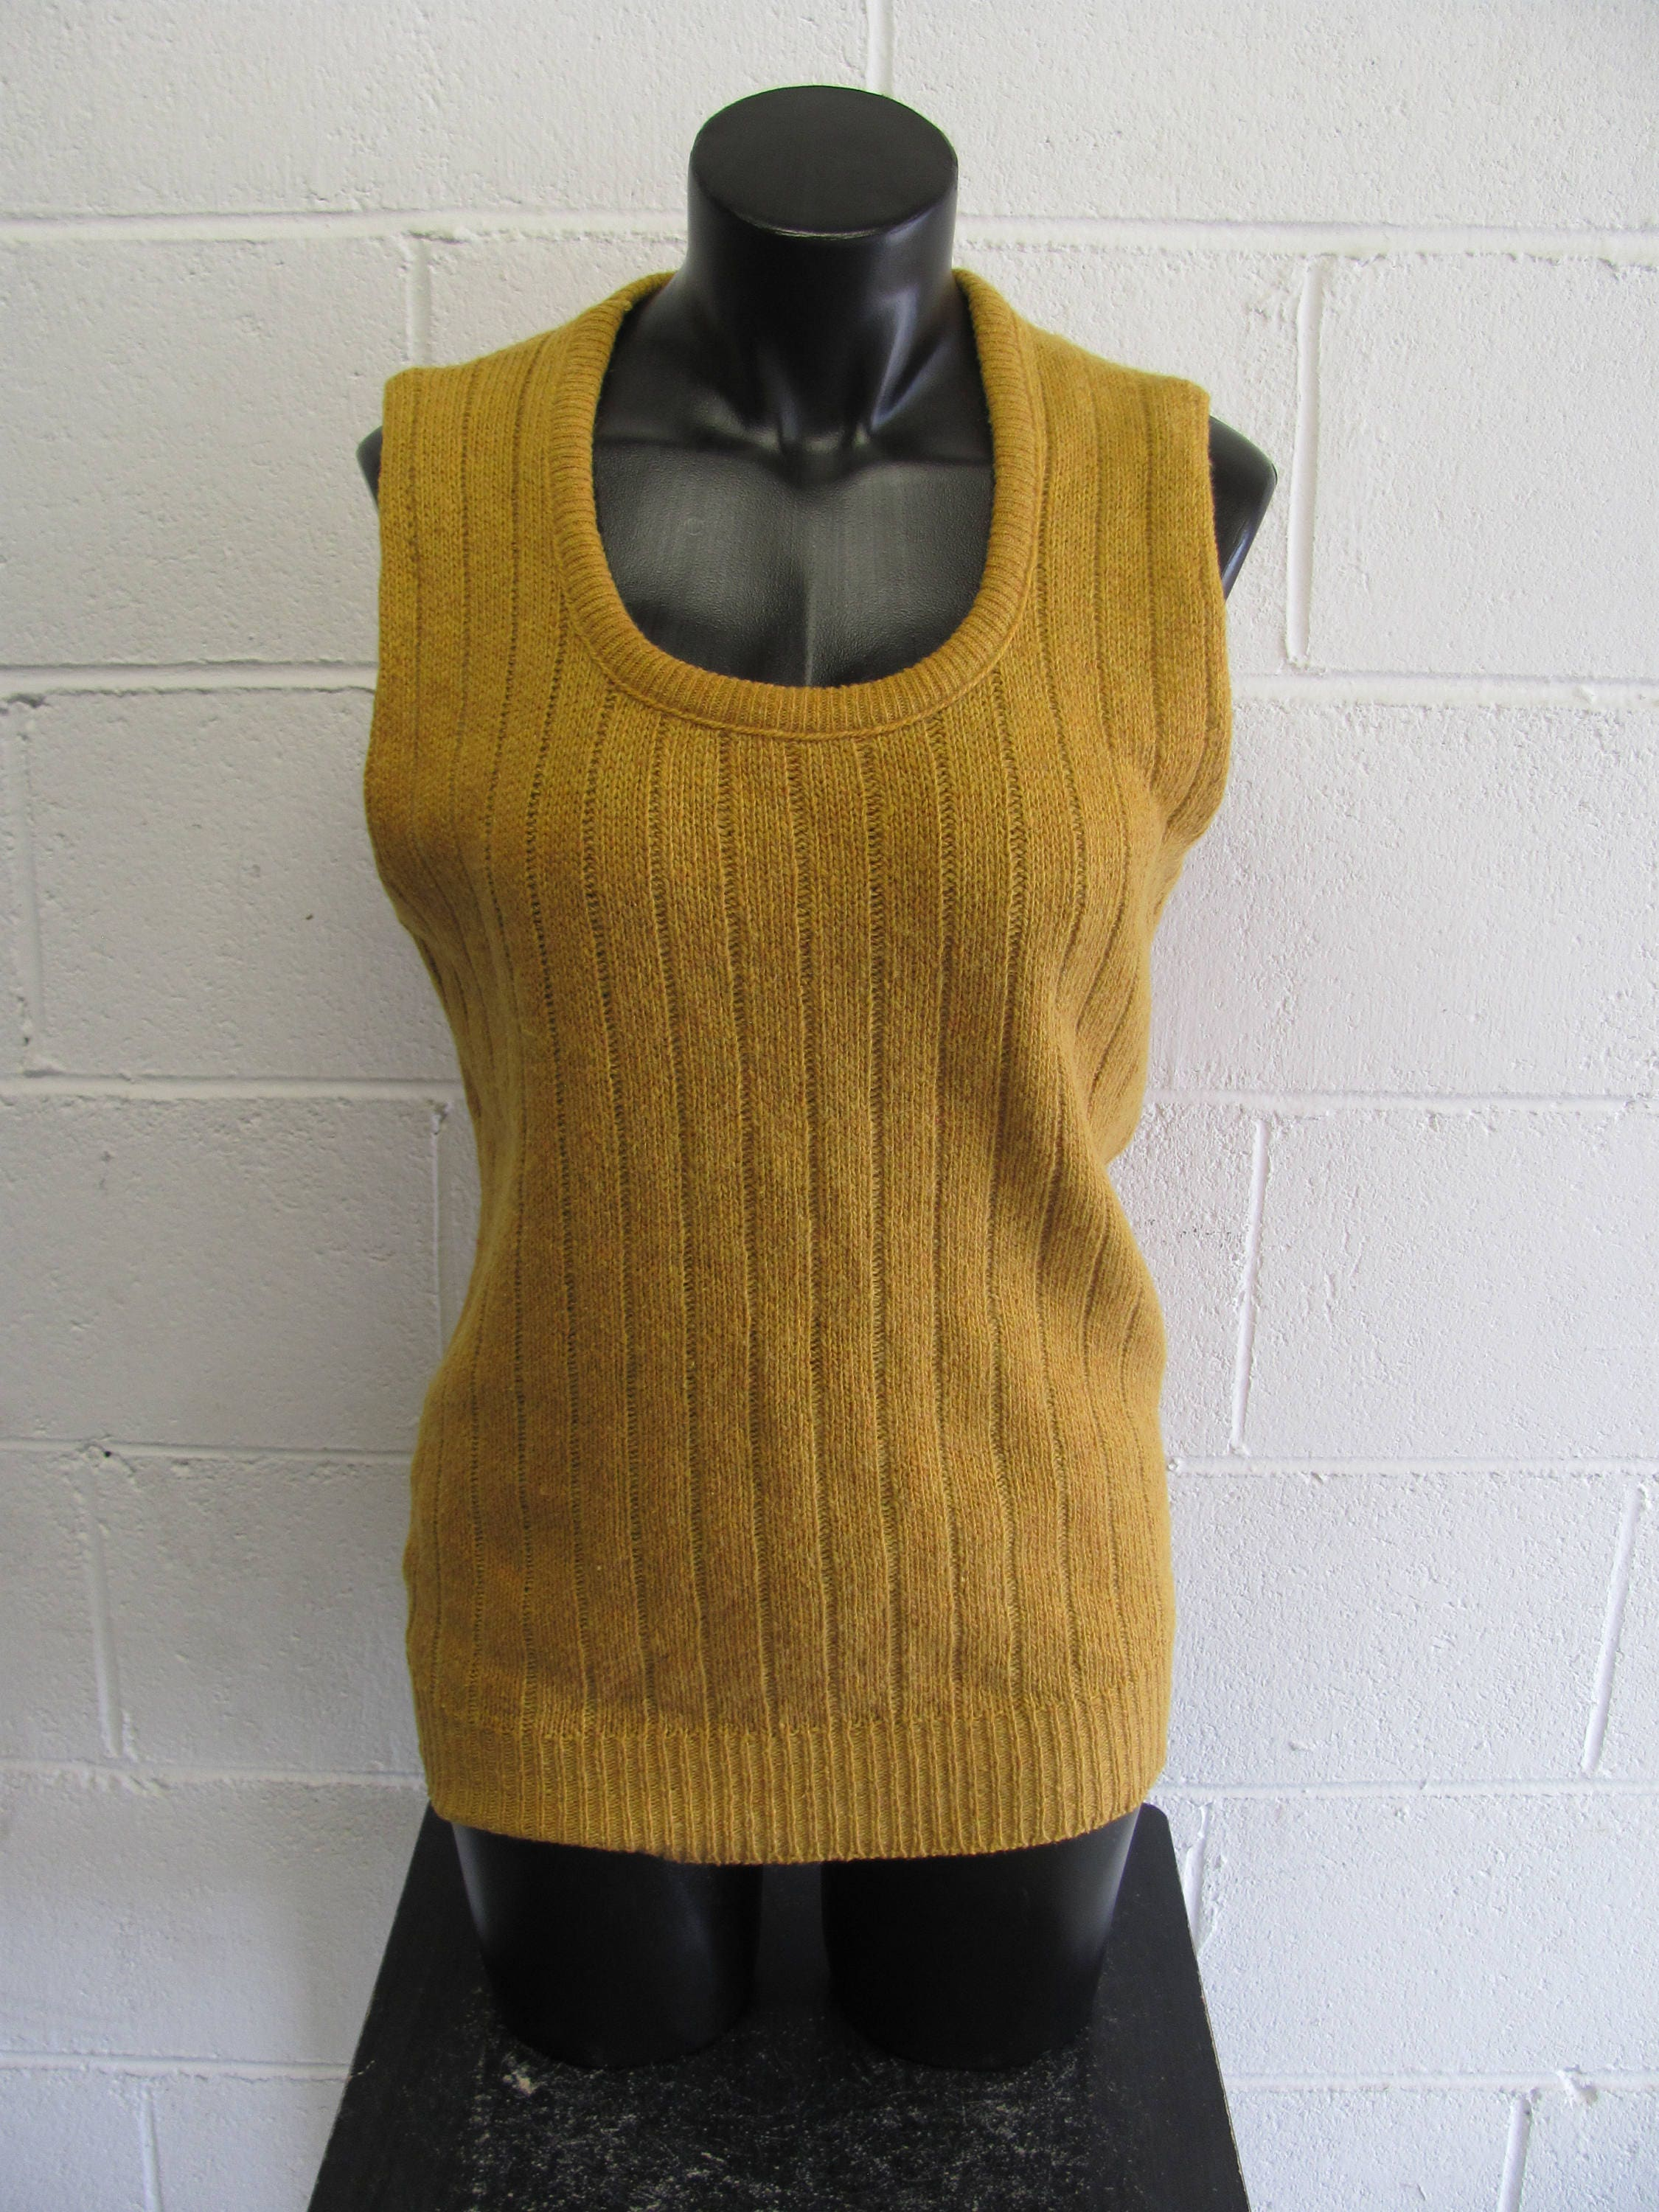 Vintage Knit Sweater Tank Top Sweater Vest Shirt Knit Tank